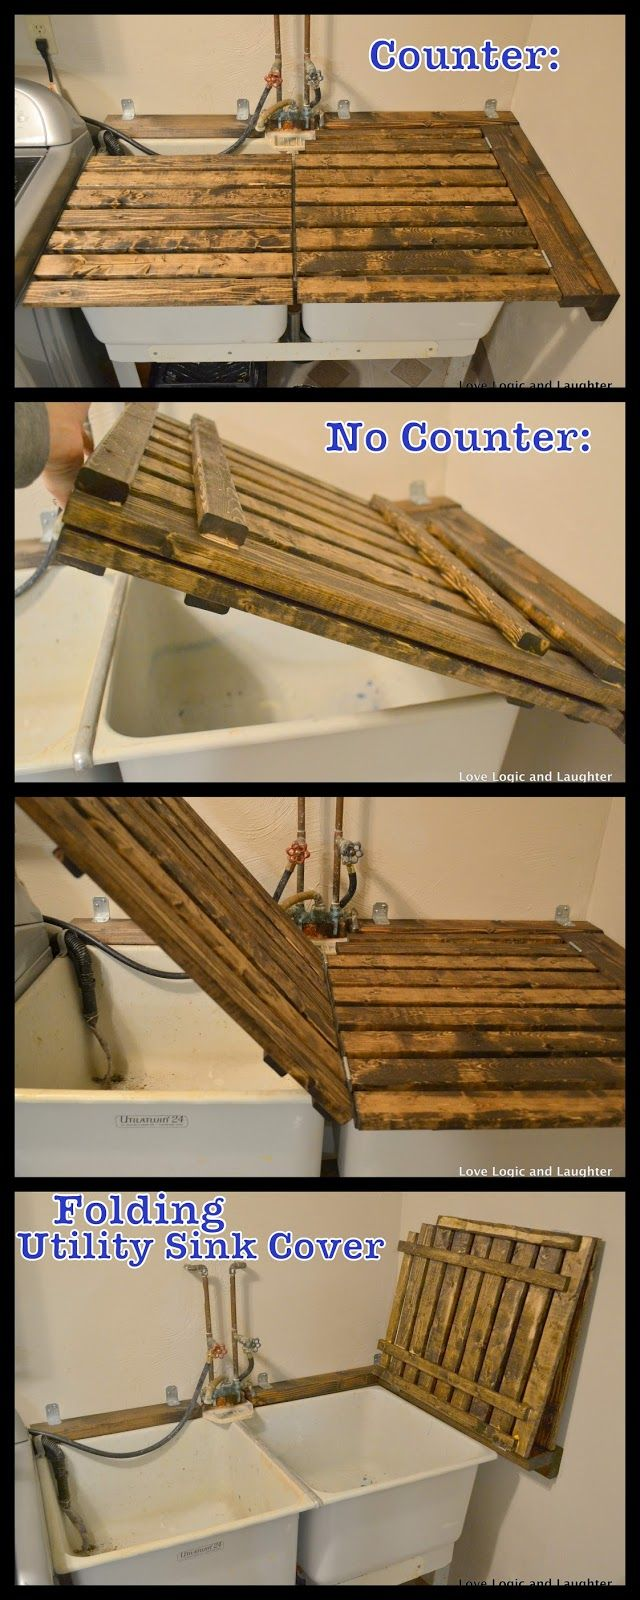 Diy Counter Over Utility Sink Fold Away To Use Sink Or Fold Down